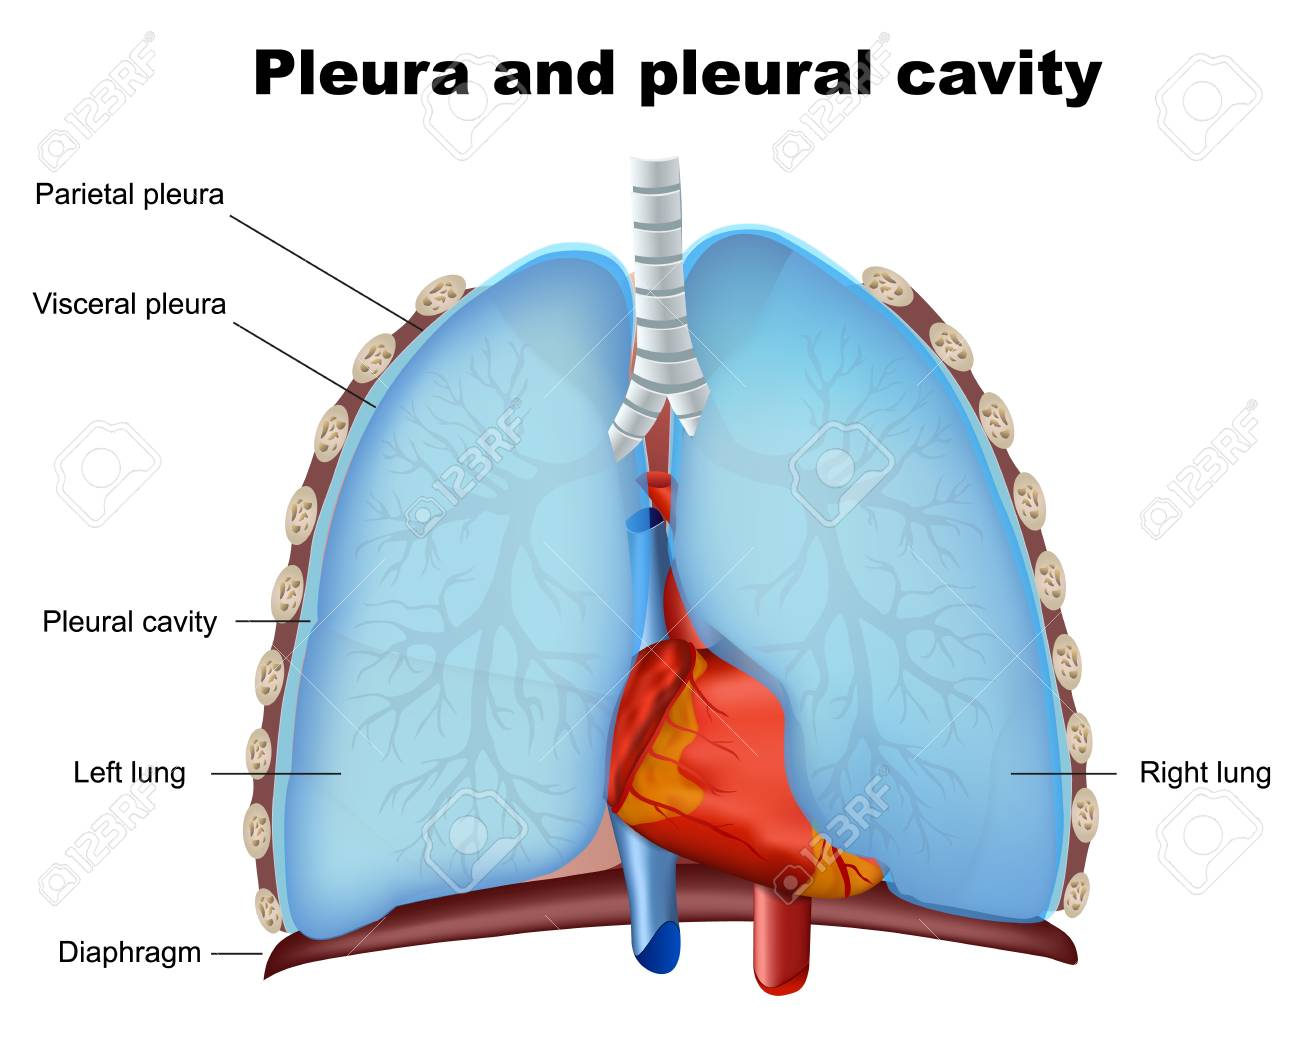 Pleurisy Causes and Homeopathy | Saburi Solace Clinic | Pleurisy treatment with homeopathy in chandigarh,pneumonia treatment with homeopathy in chandigarh,chest pain with cough treatment with homeopathy in chandigarh,chest infections treatment with homeopa - GL94309